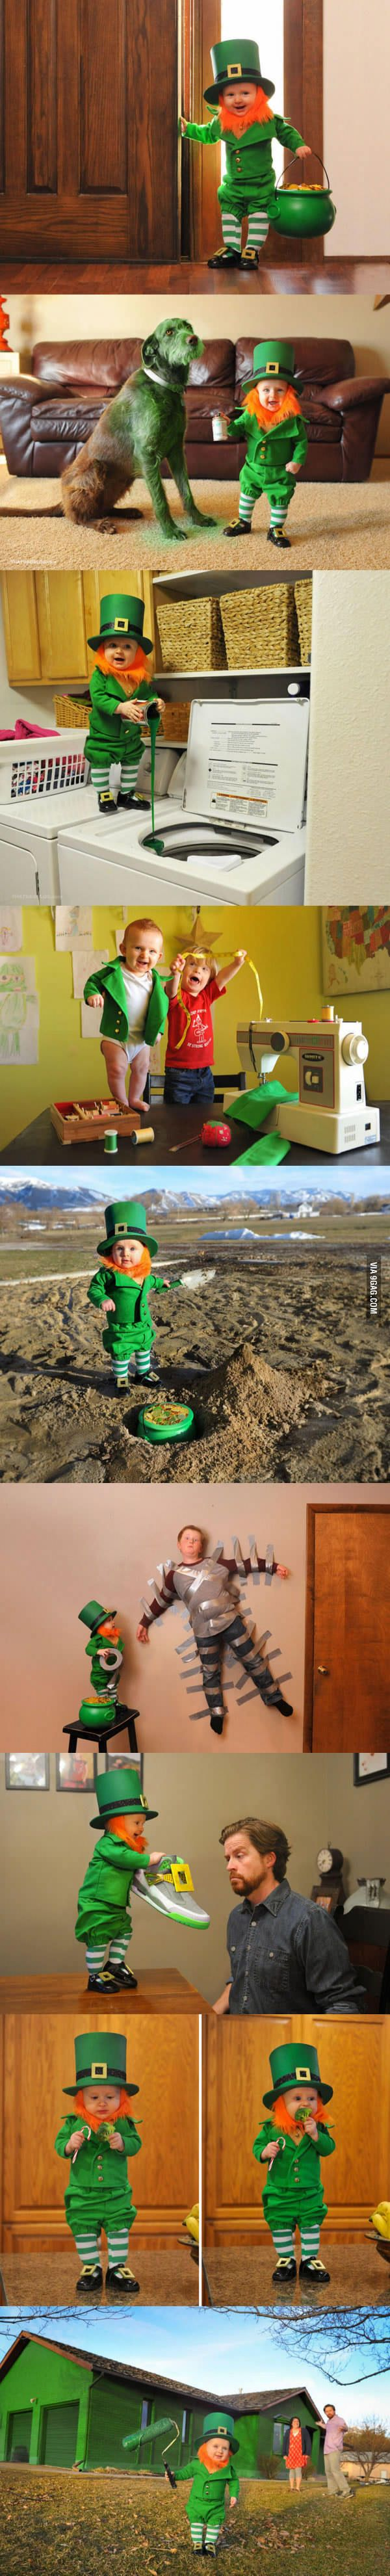 Dad turns his 6-month-old baby into a naughty Leprechaun